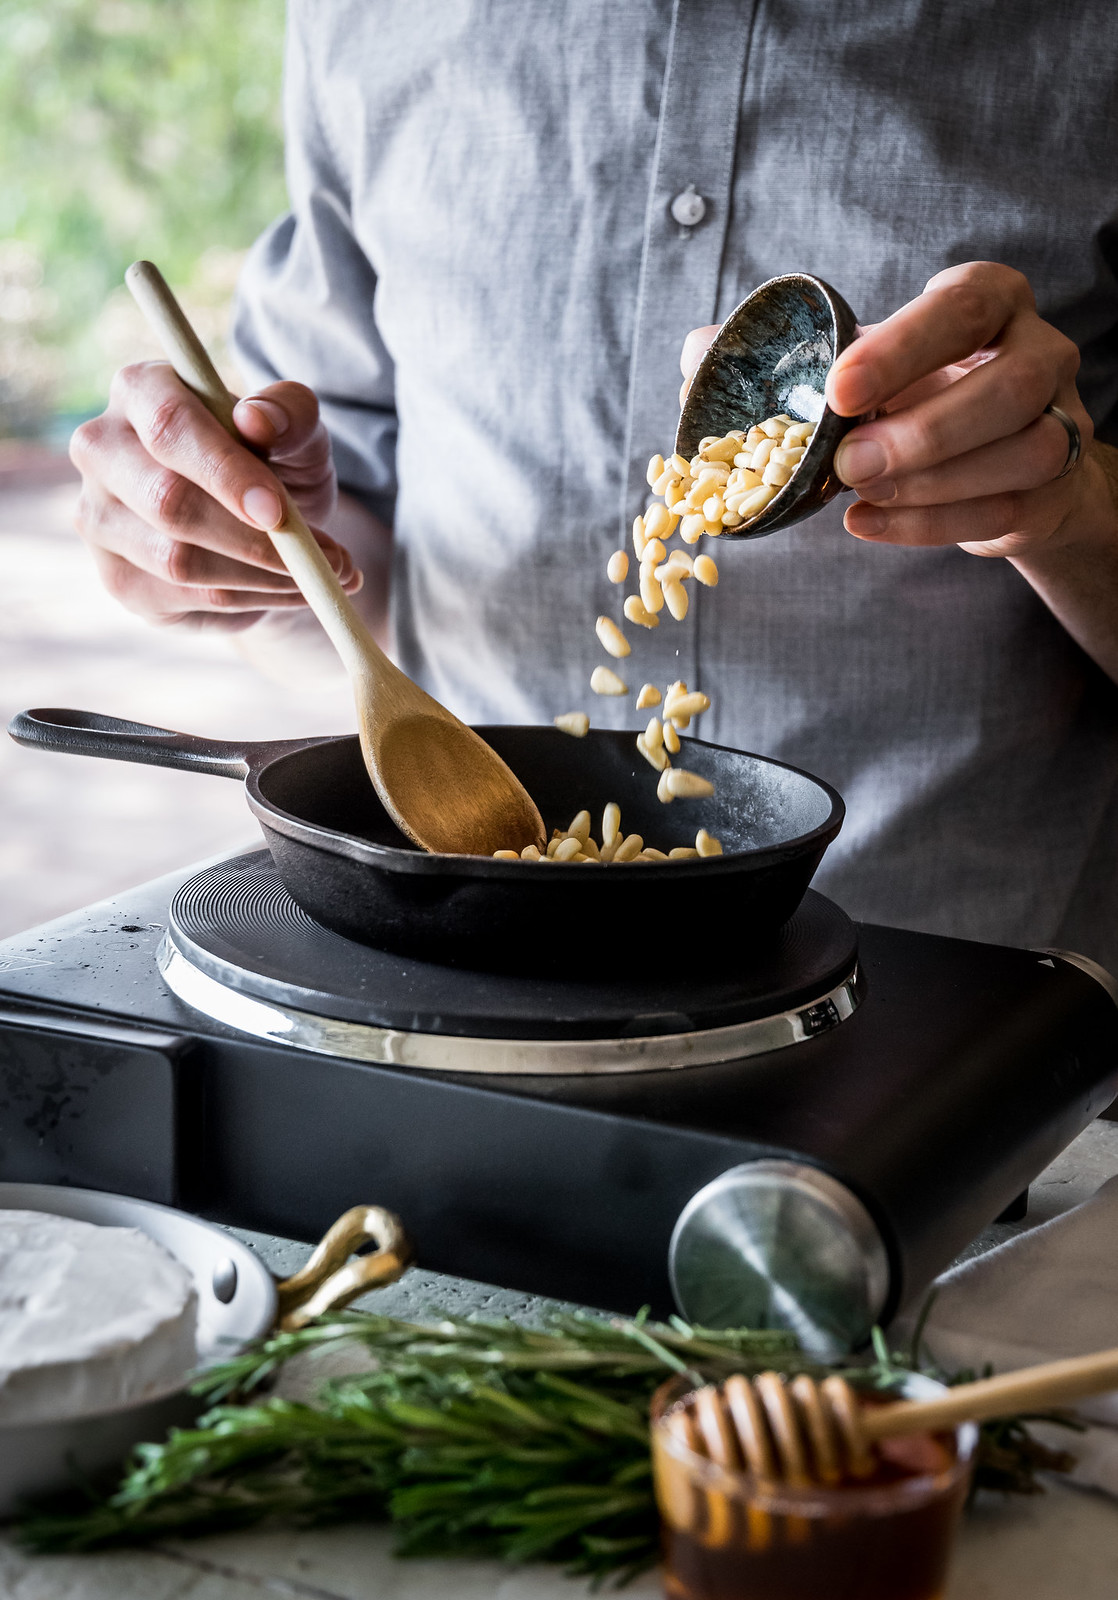 toasting the pine nuts makes them much more flavorful